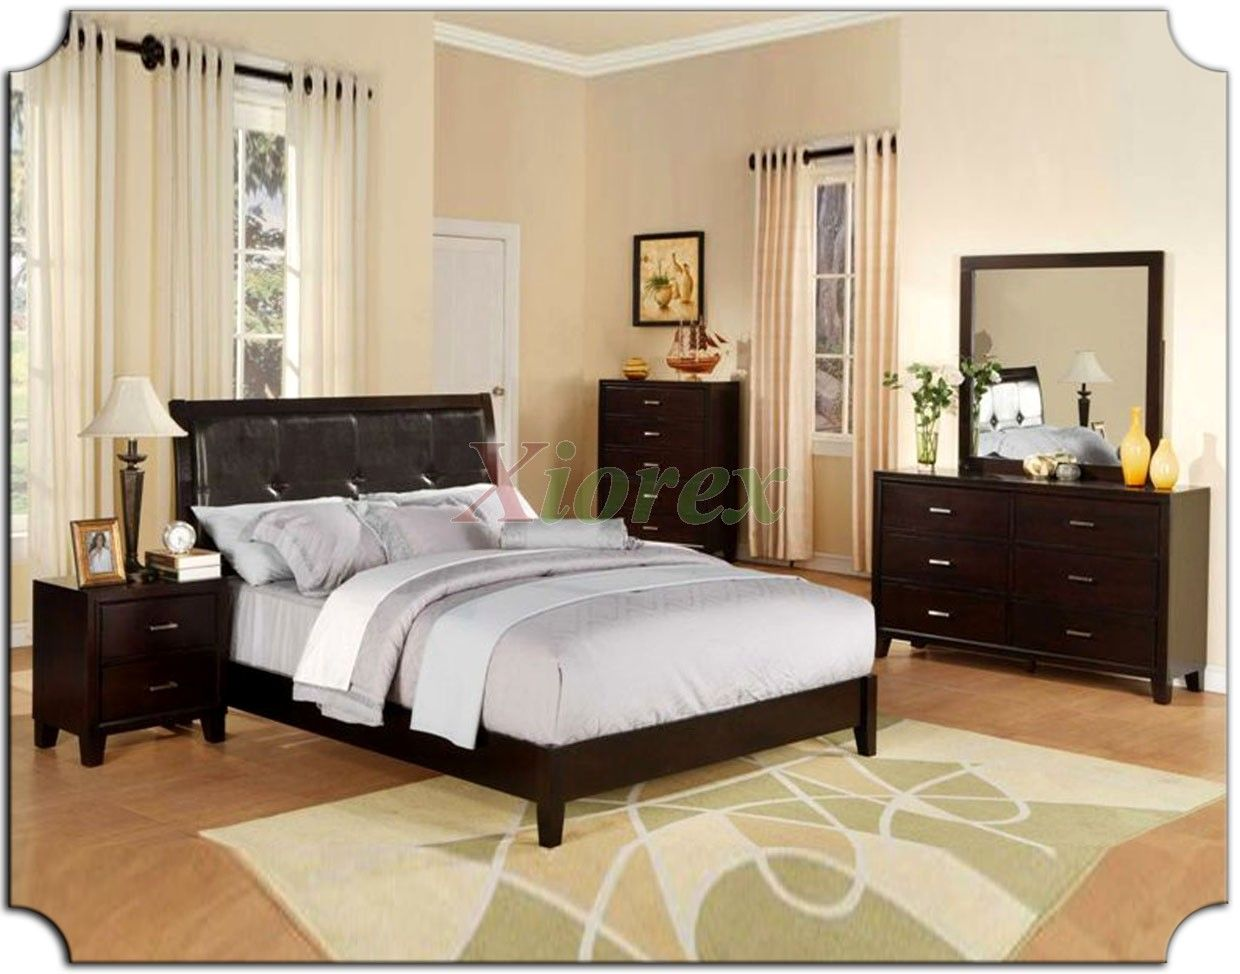 Beau Bedroom Sets With Leather Headboards